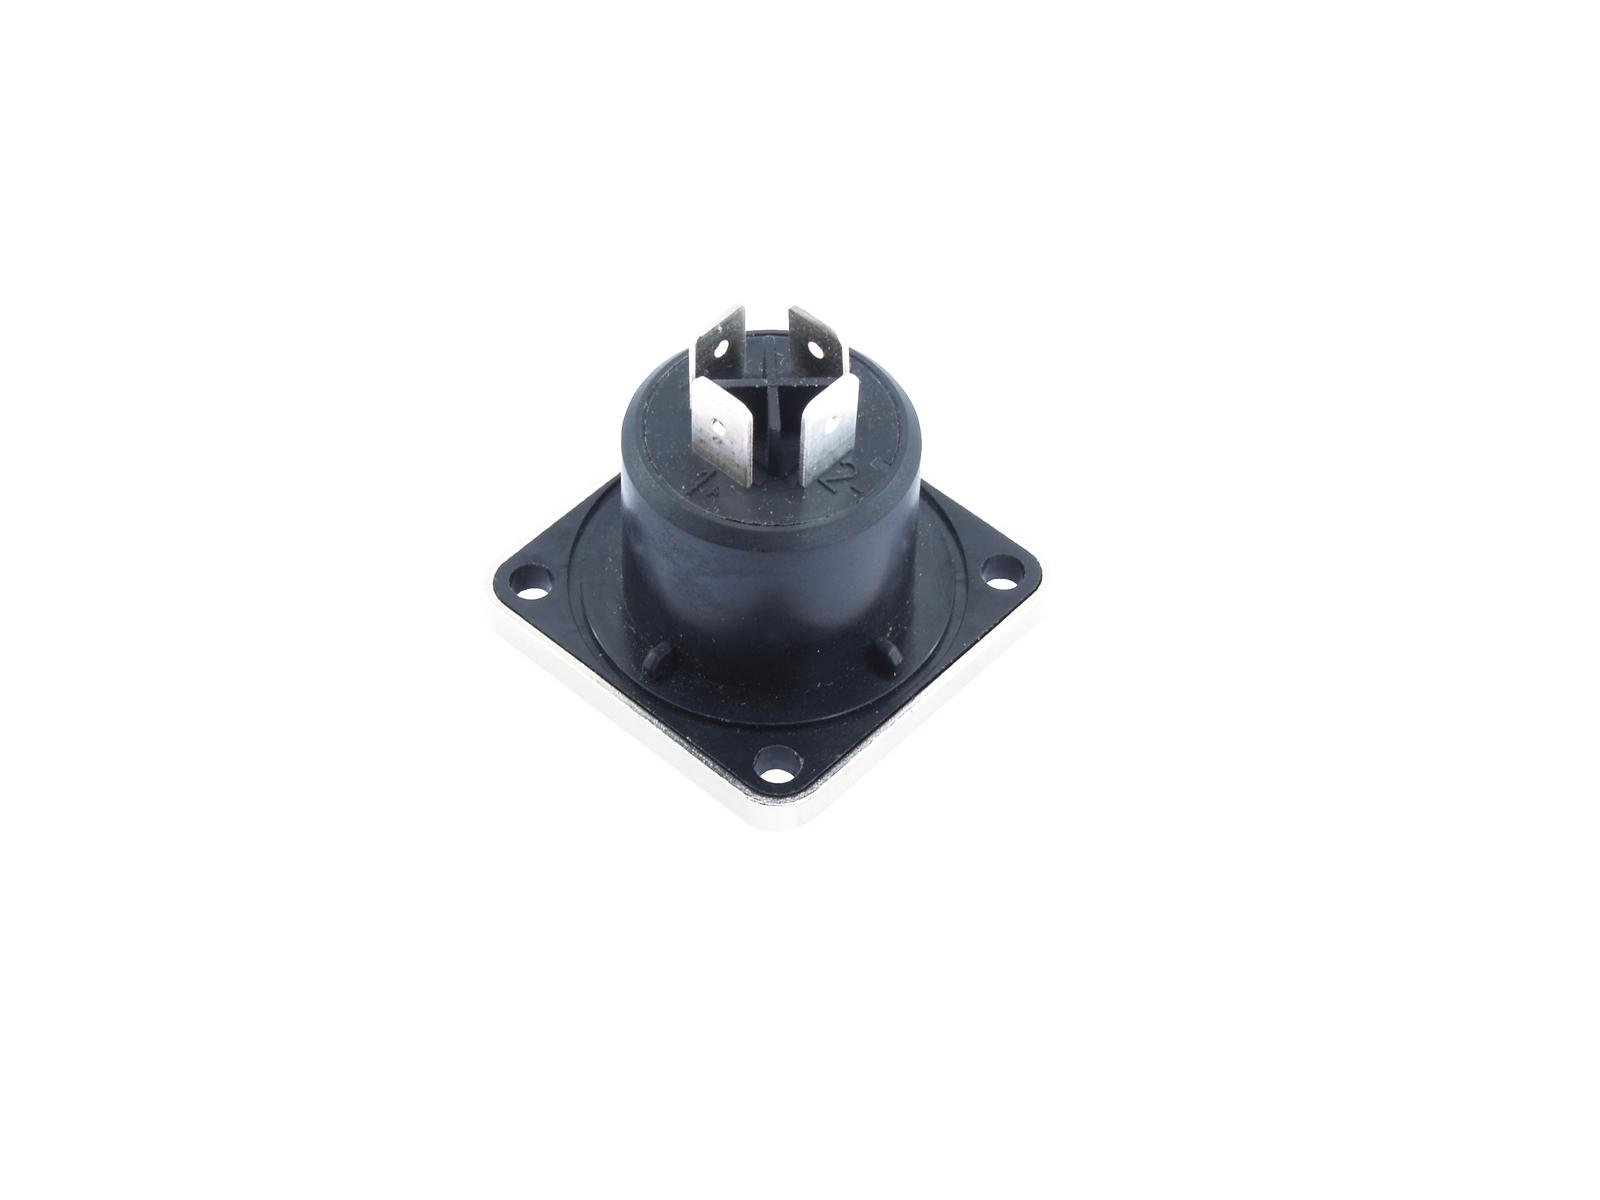 NEUTRIK Speakon zoccolo di montaggio 4pin NLT4MP